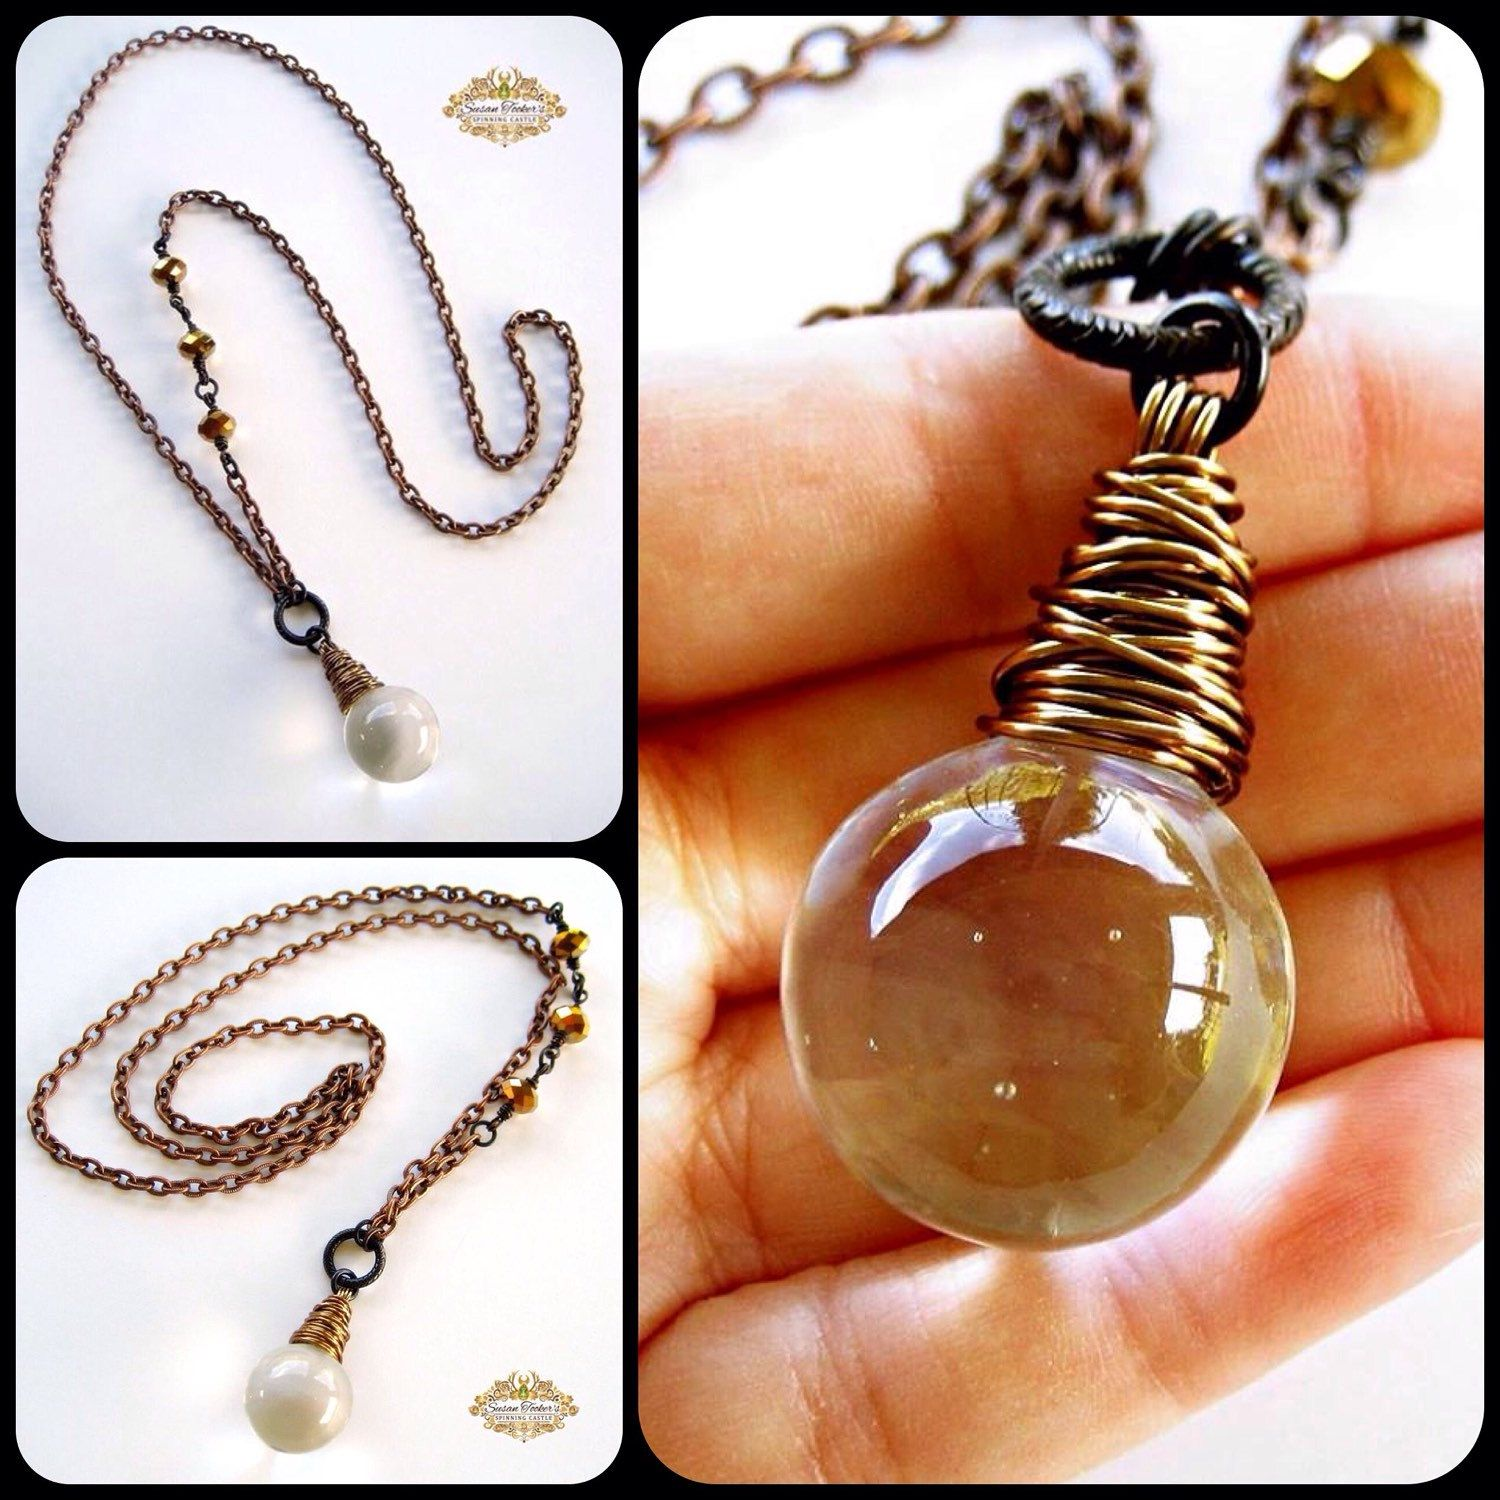 FORTUNE TELLER is a long statement necklace that features a large, antique chandelier crystal and faceted crystal beads. The crystal sphere pendant was wrapped with copper wire and is accented with a large, etched ring.